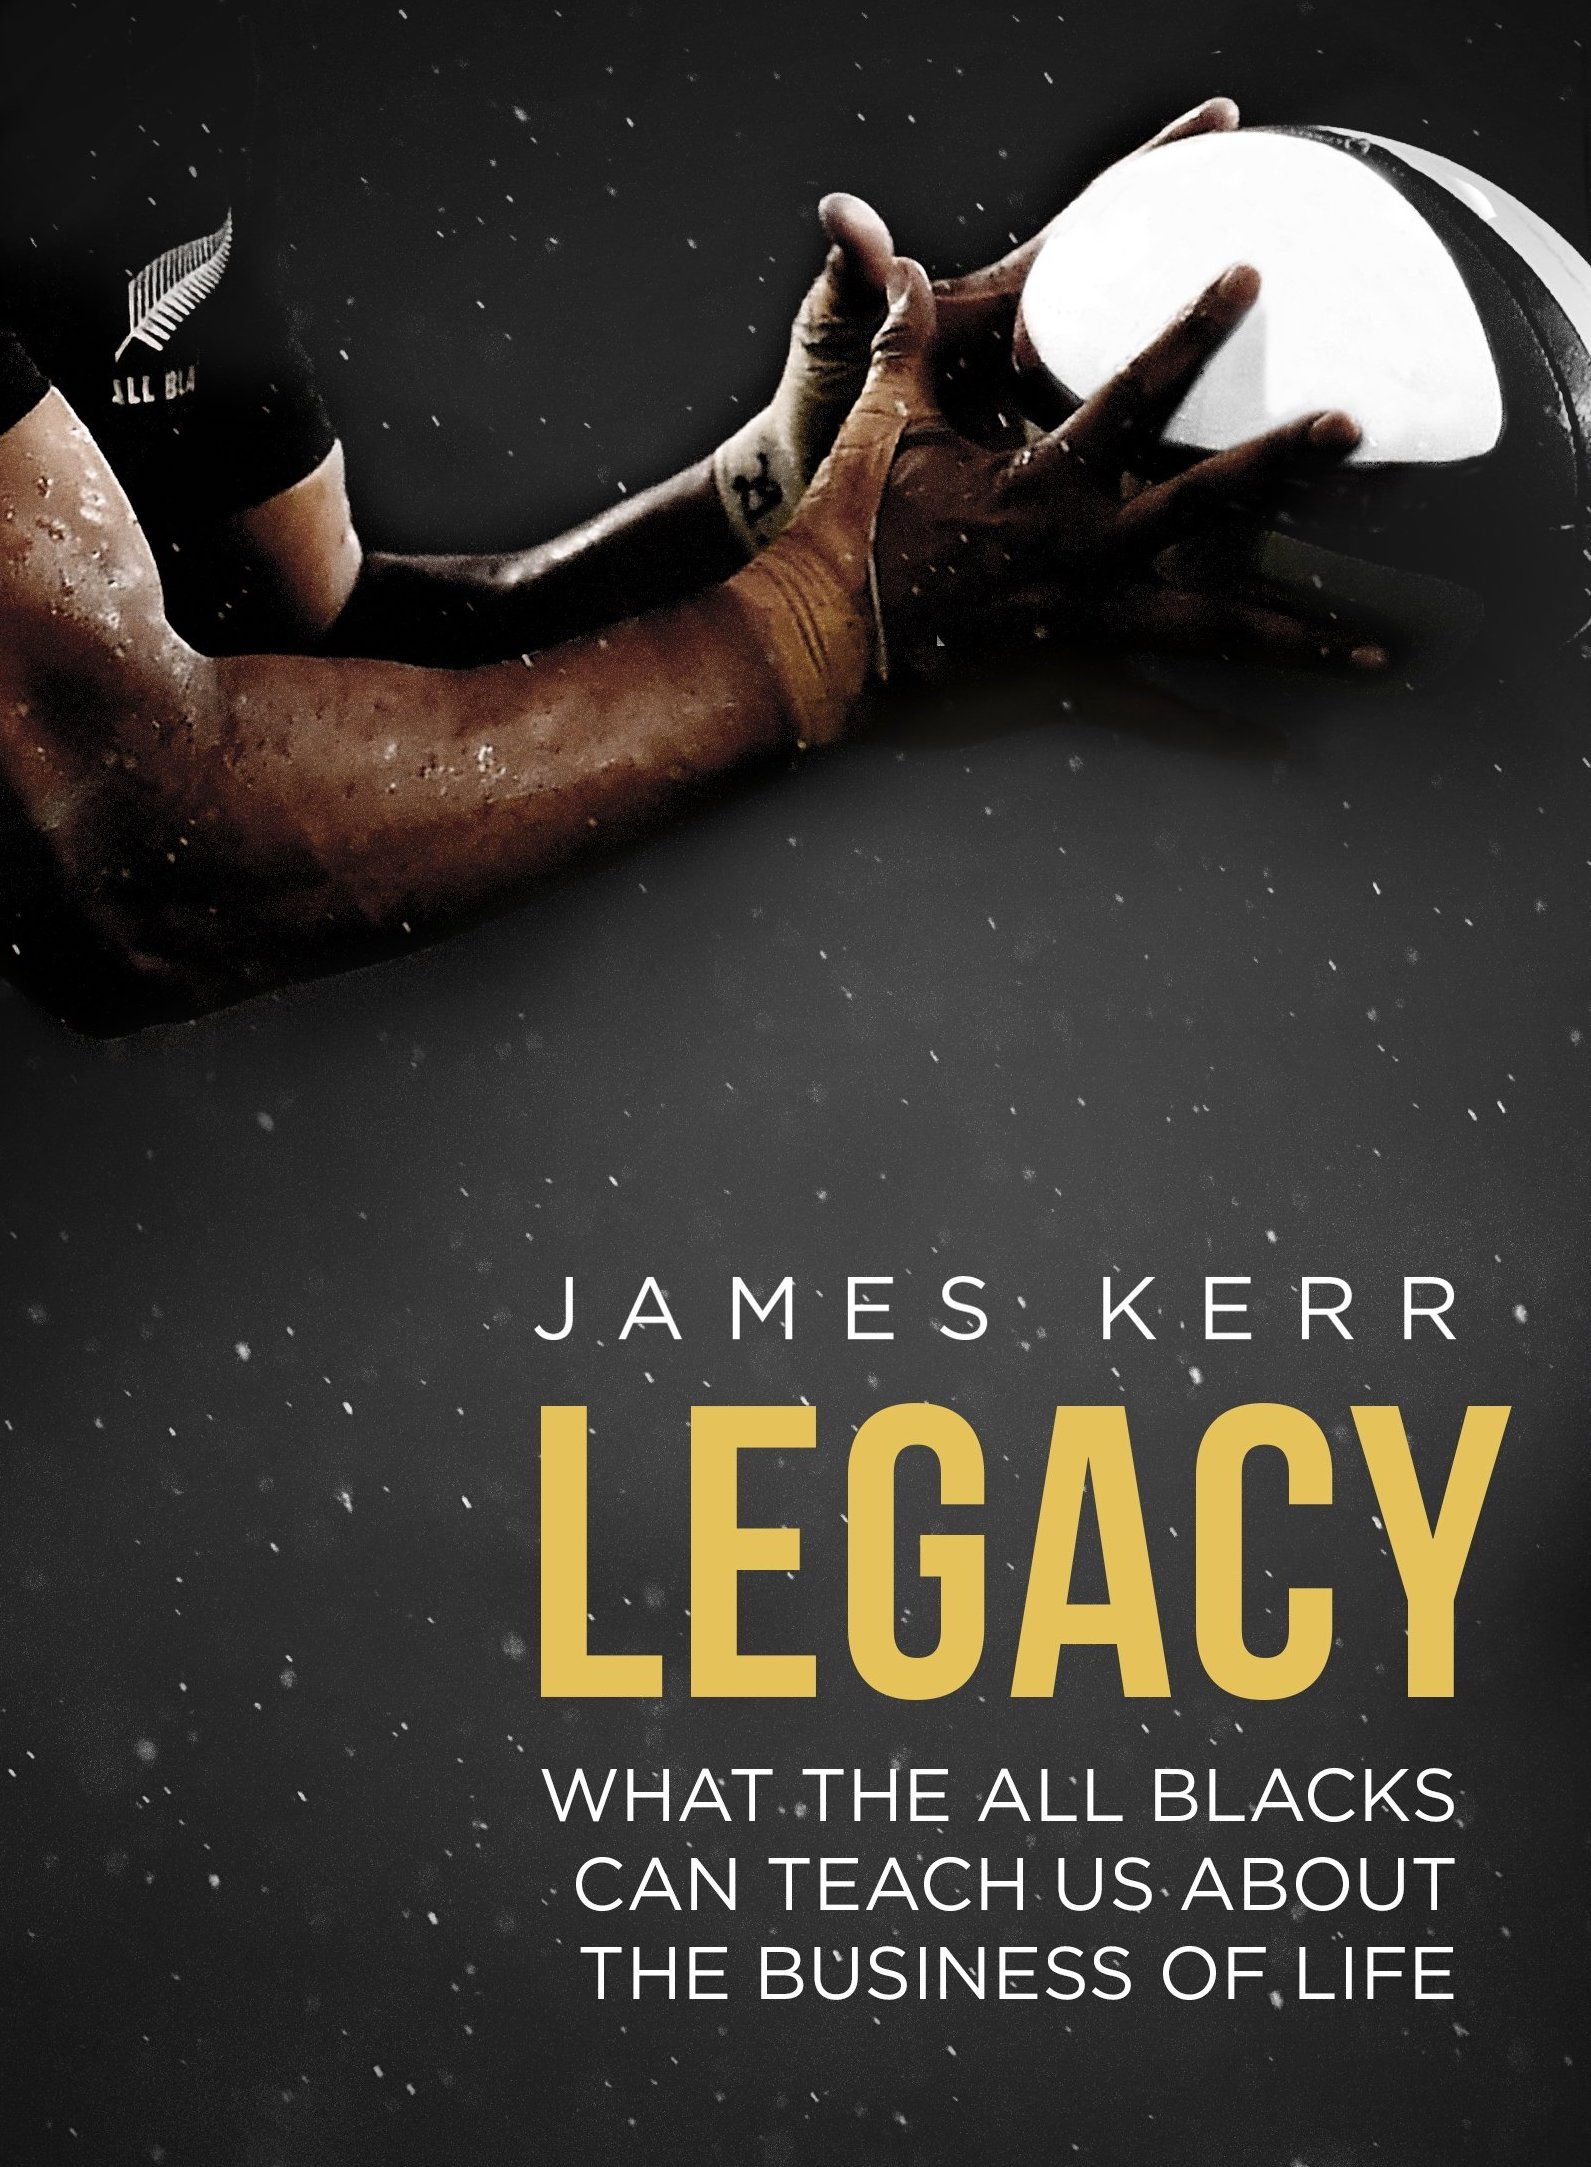 LEGACY with James Kerr (Rebroadcast)